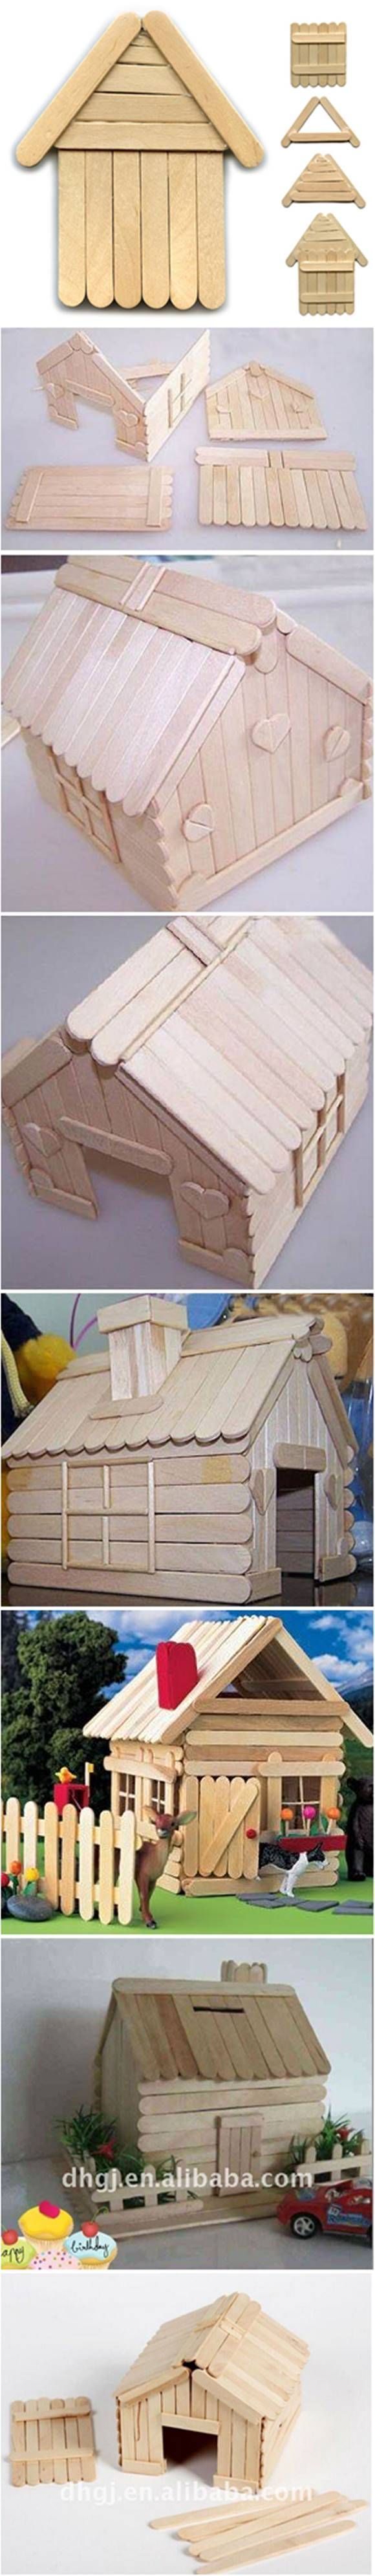 Popsicle stick church craft - How To Diy Popsicle Stick House